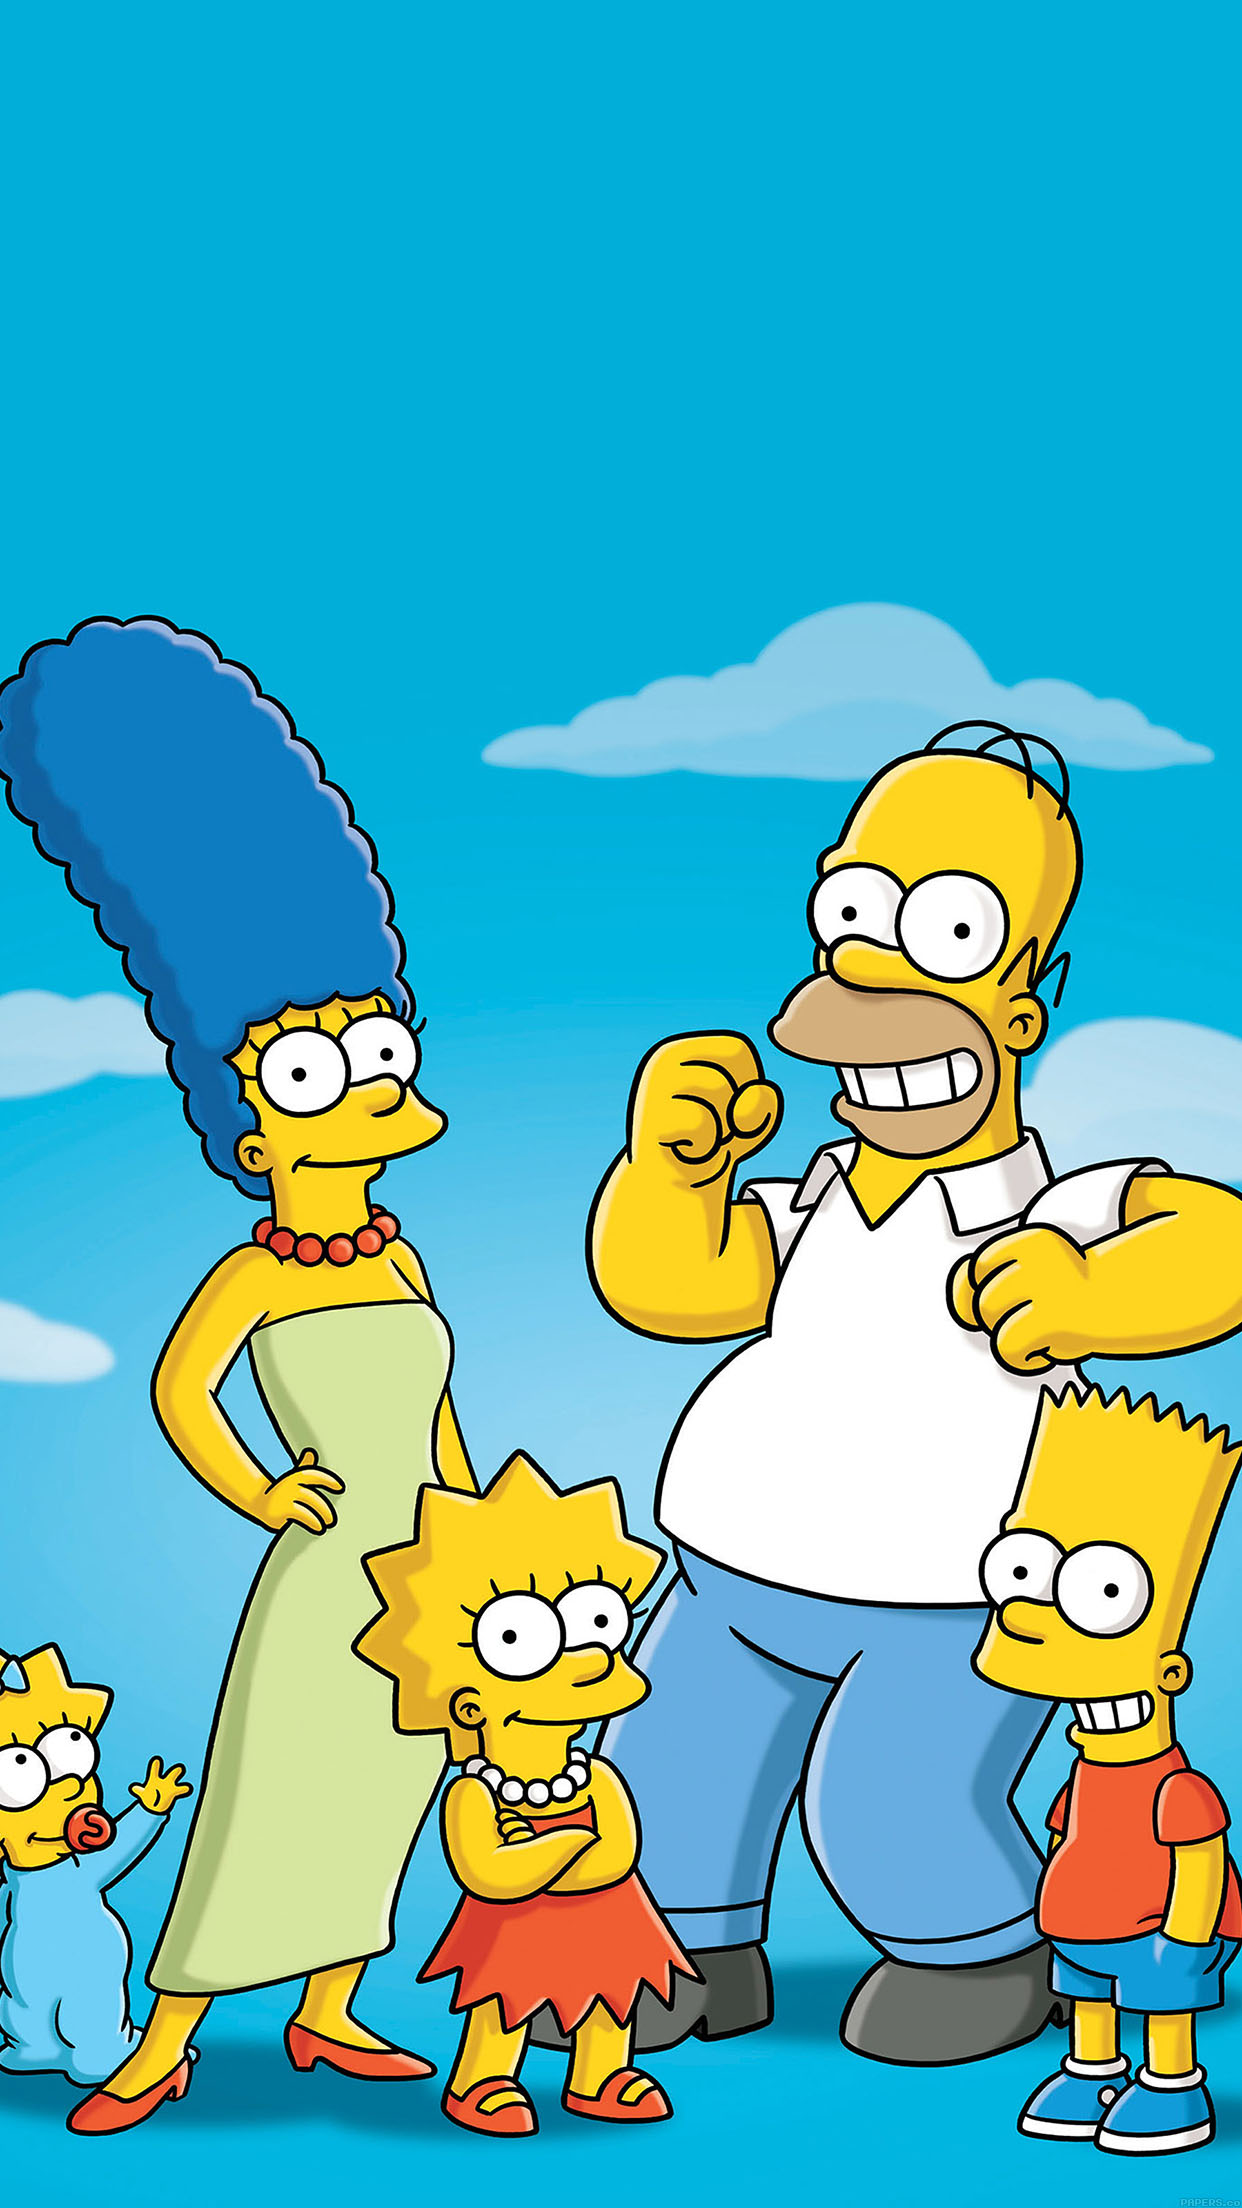 the simpsons essay How the simpsons changed tv as the ground-breaking series turns 25, stephen dowling reflects on the revolutionary style of comedy its writers introduced.